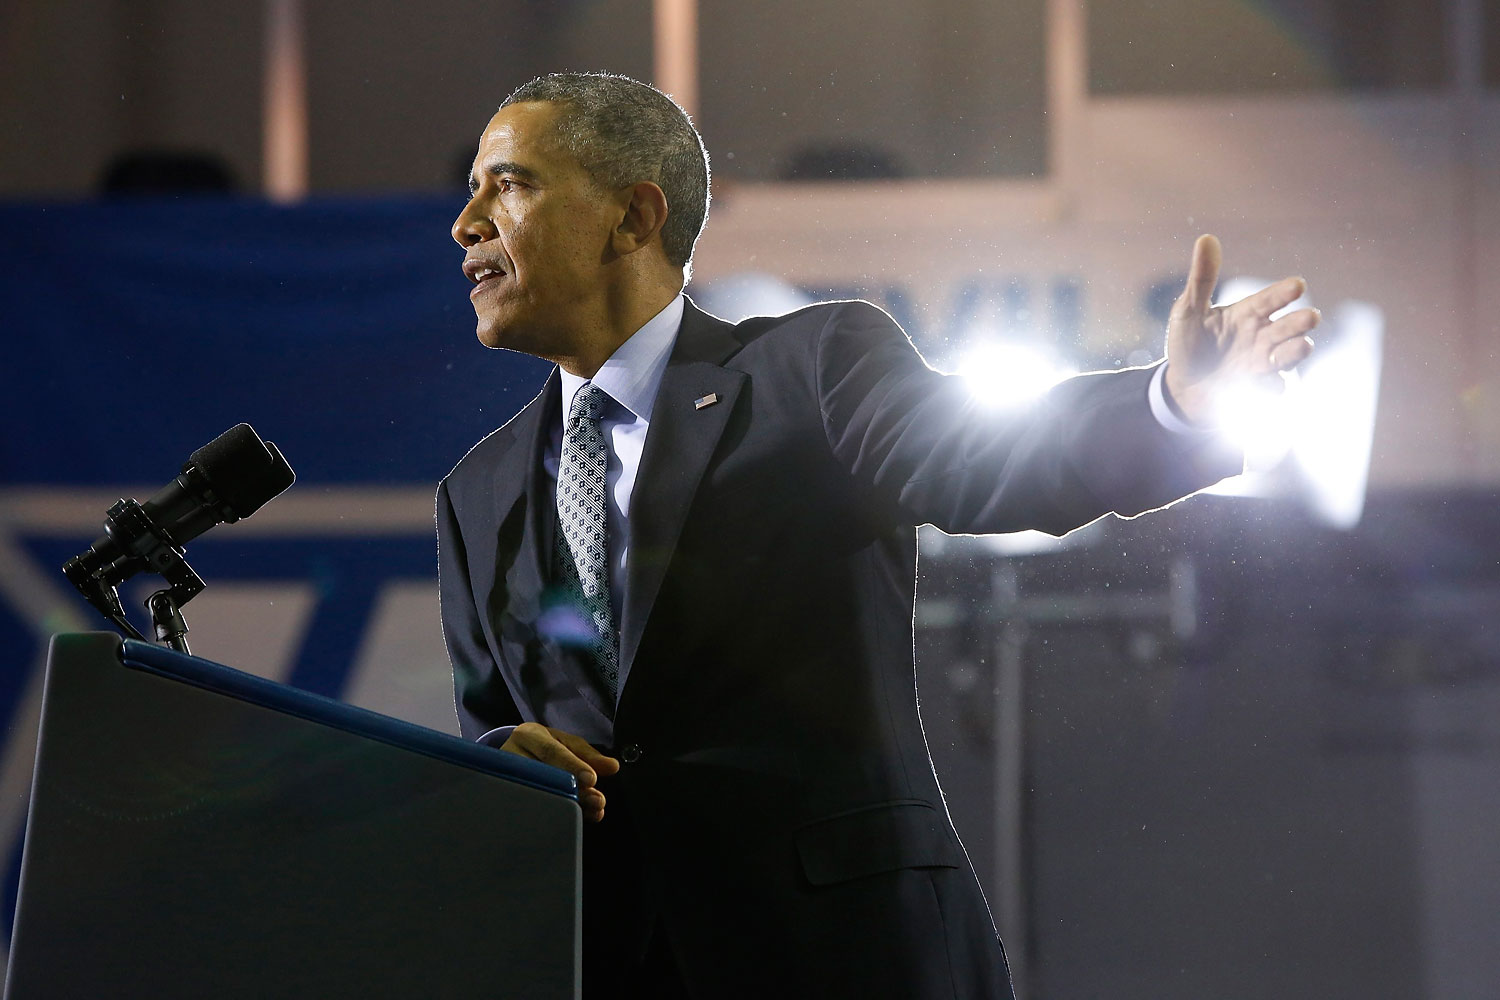 U.S. President Barack Obama speaks at Central Connecticut State University in New Britain, Connecticut March 5, 2014.